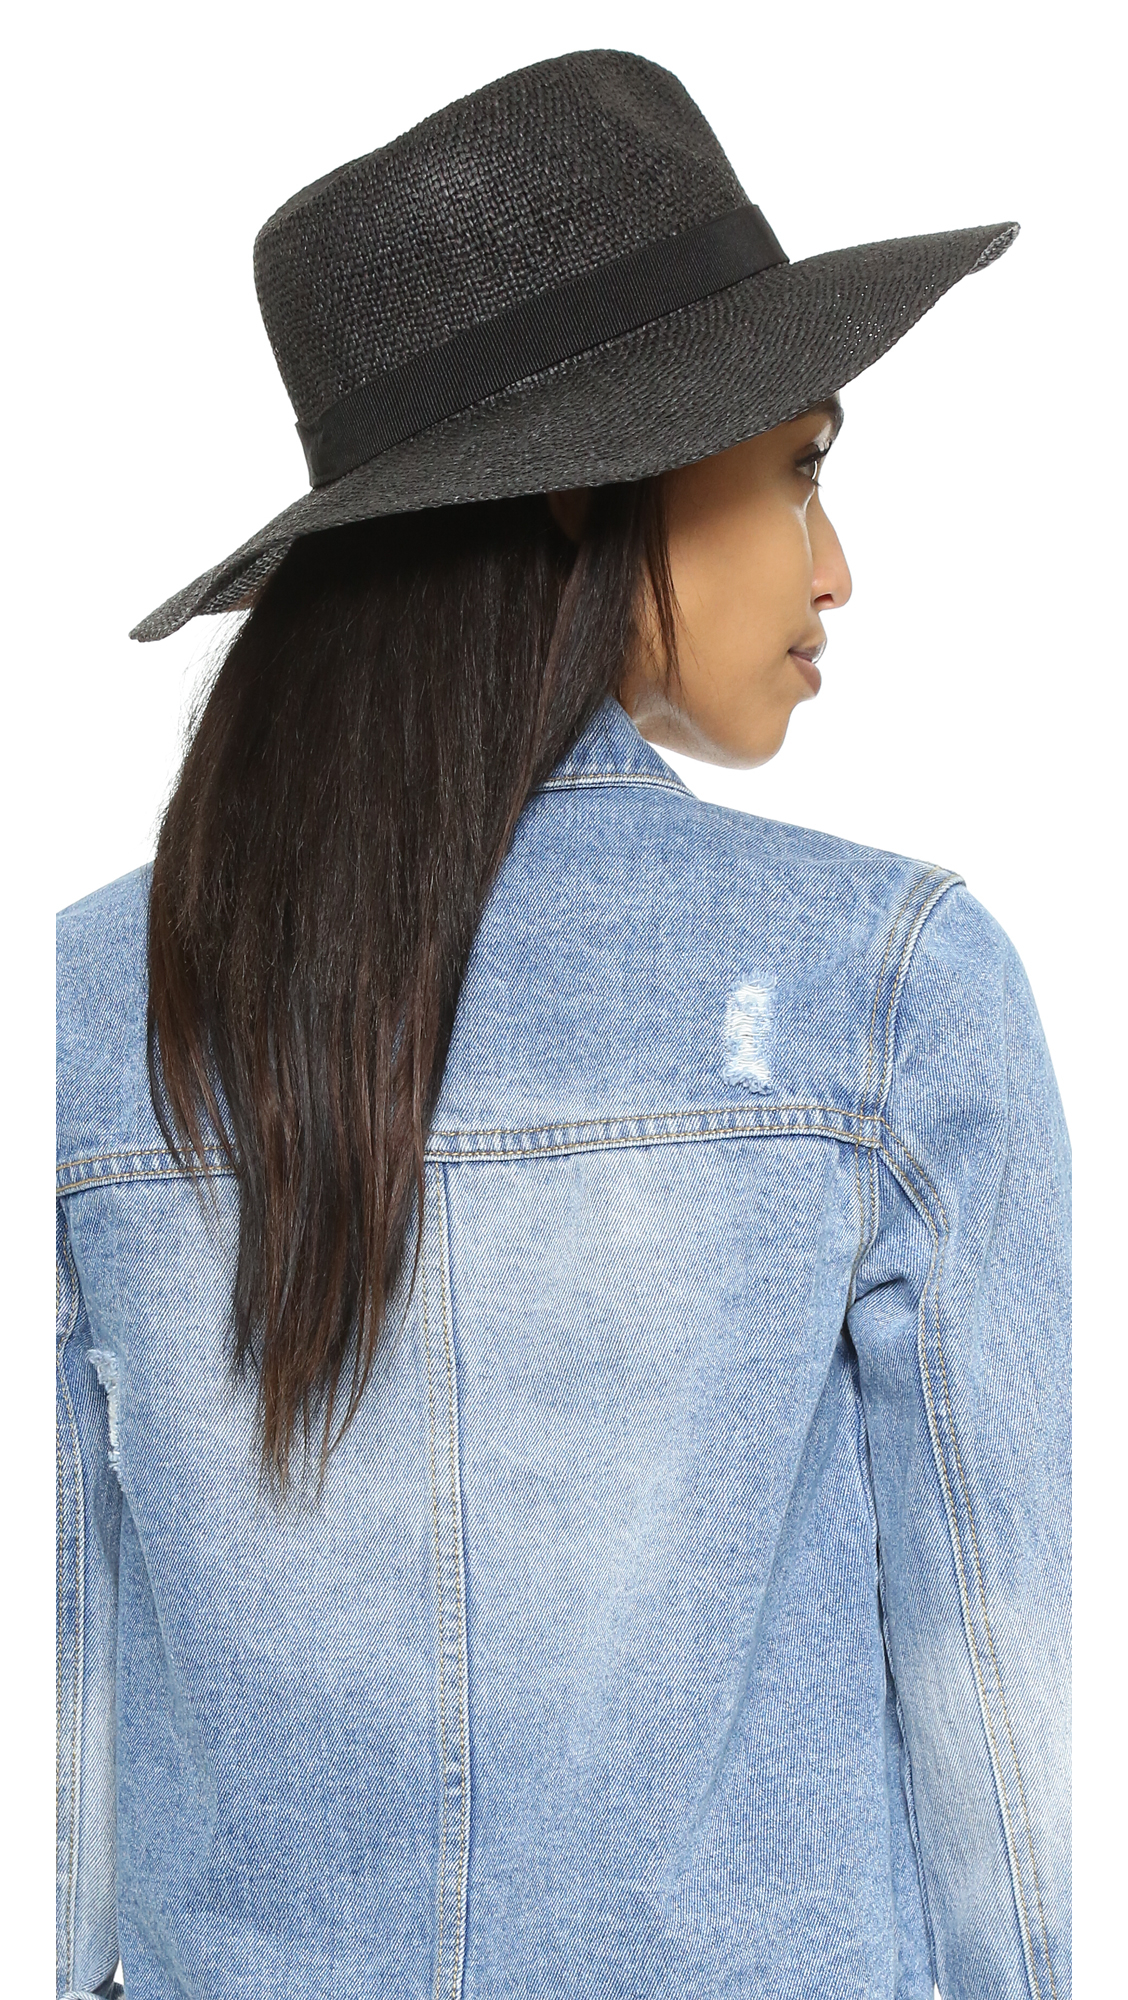 db1627ff6ec77 Madewell Packable Woven Hat in Black - Lyst